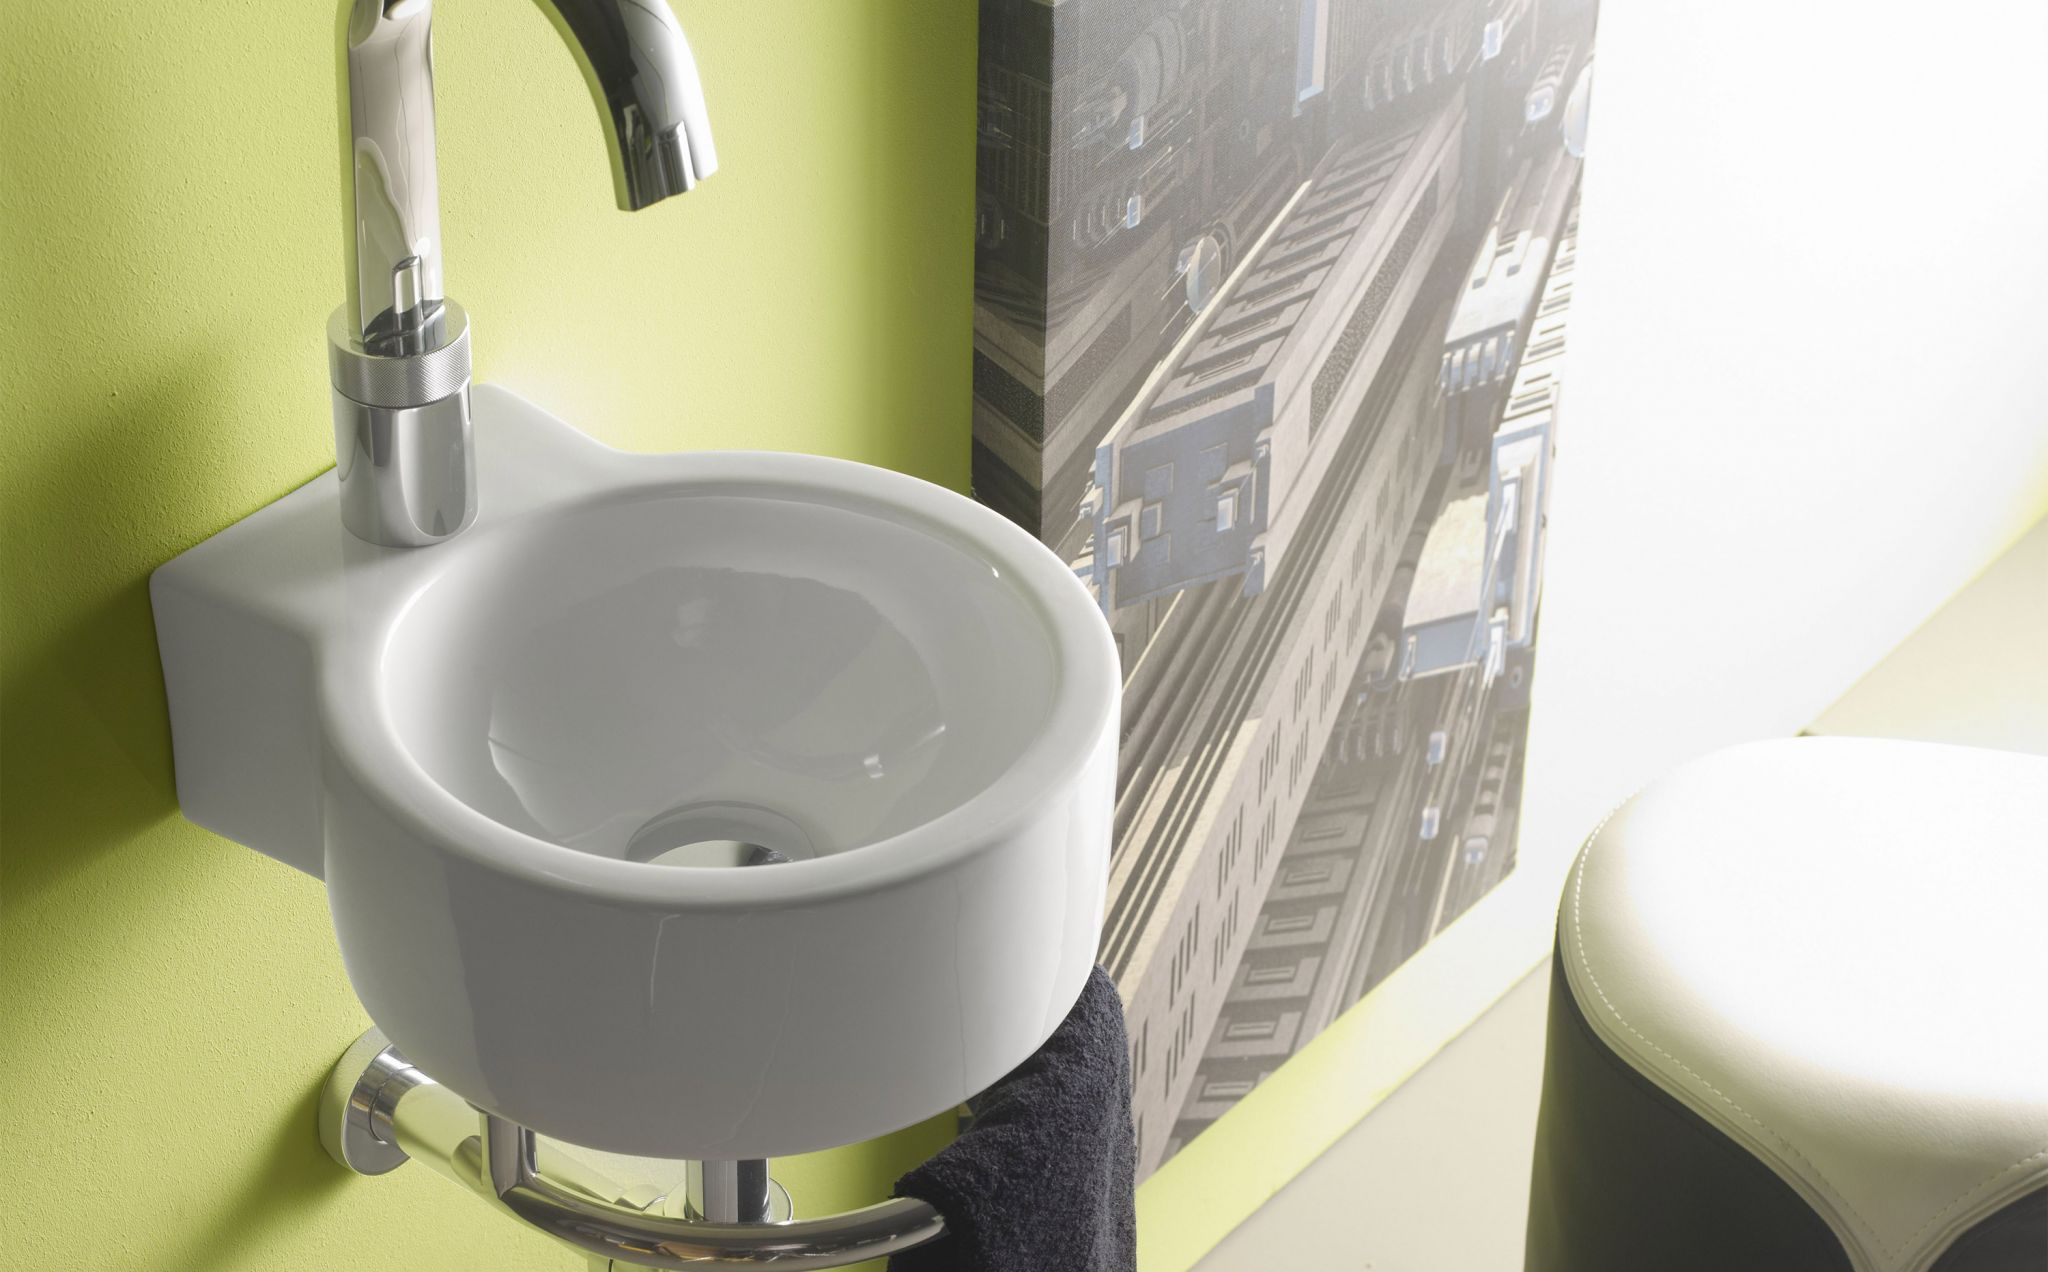 Toallero Mueble Lavabo Sherry Lavabos De Porcelana Mini Bathco